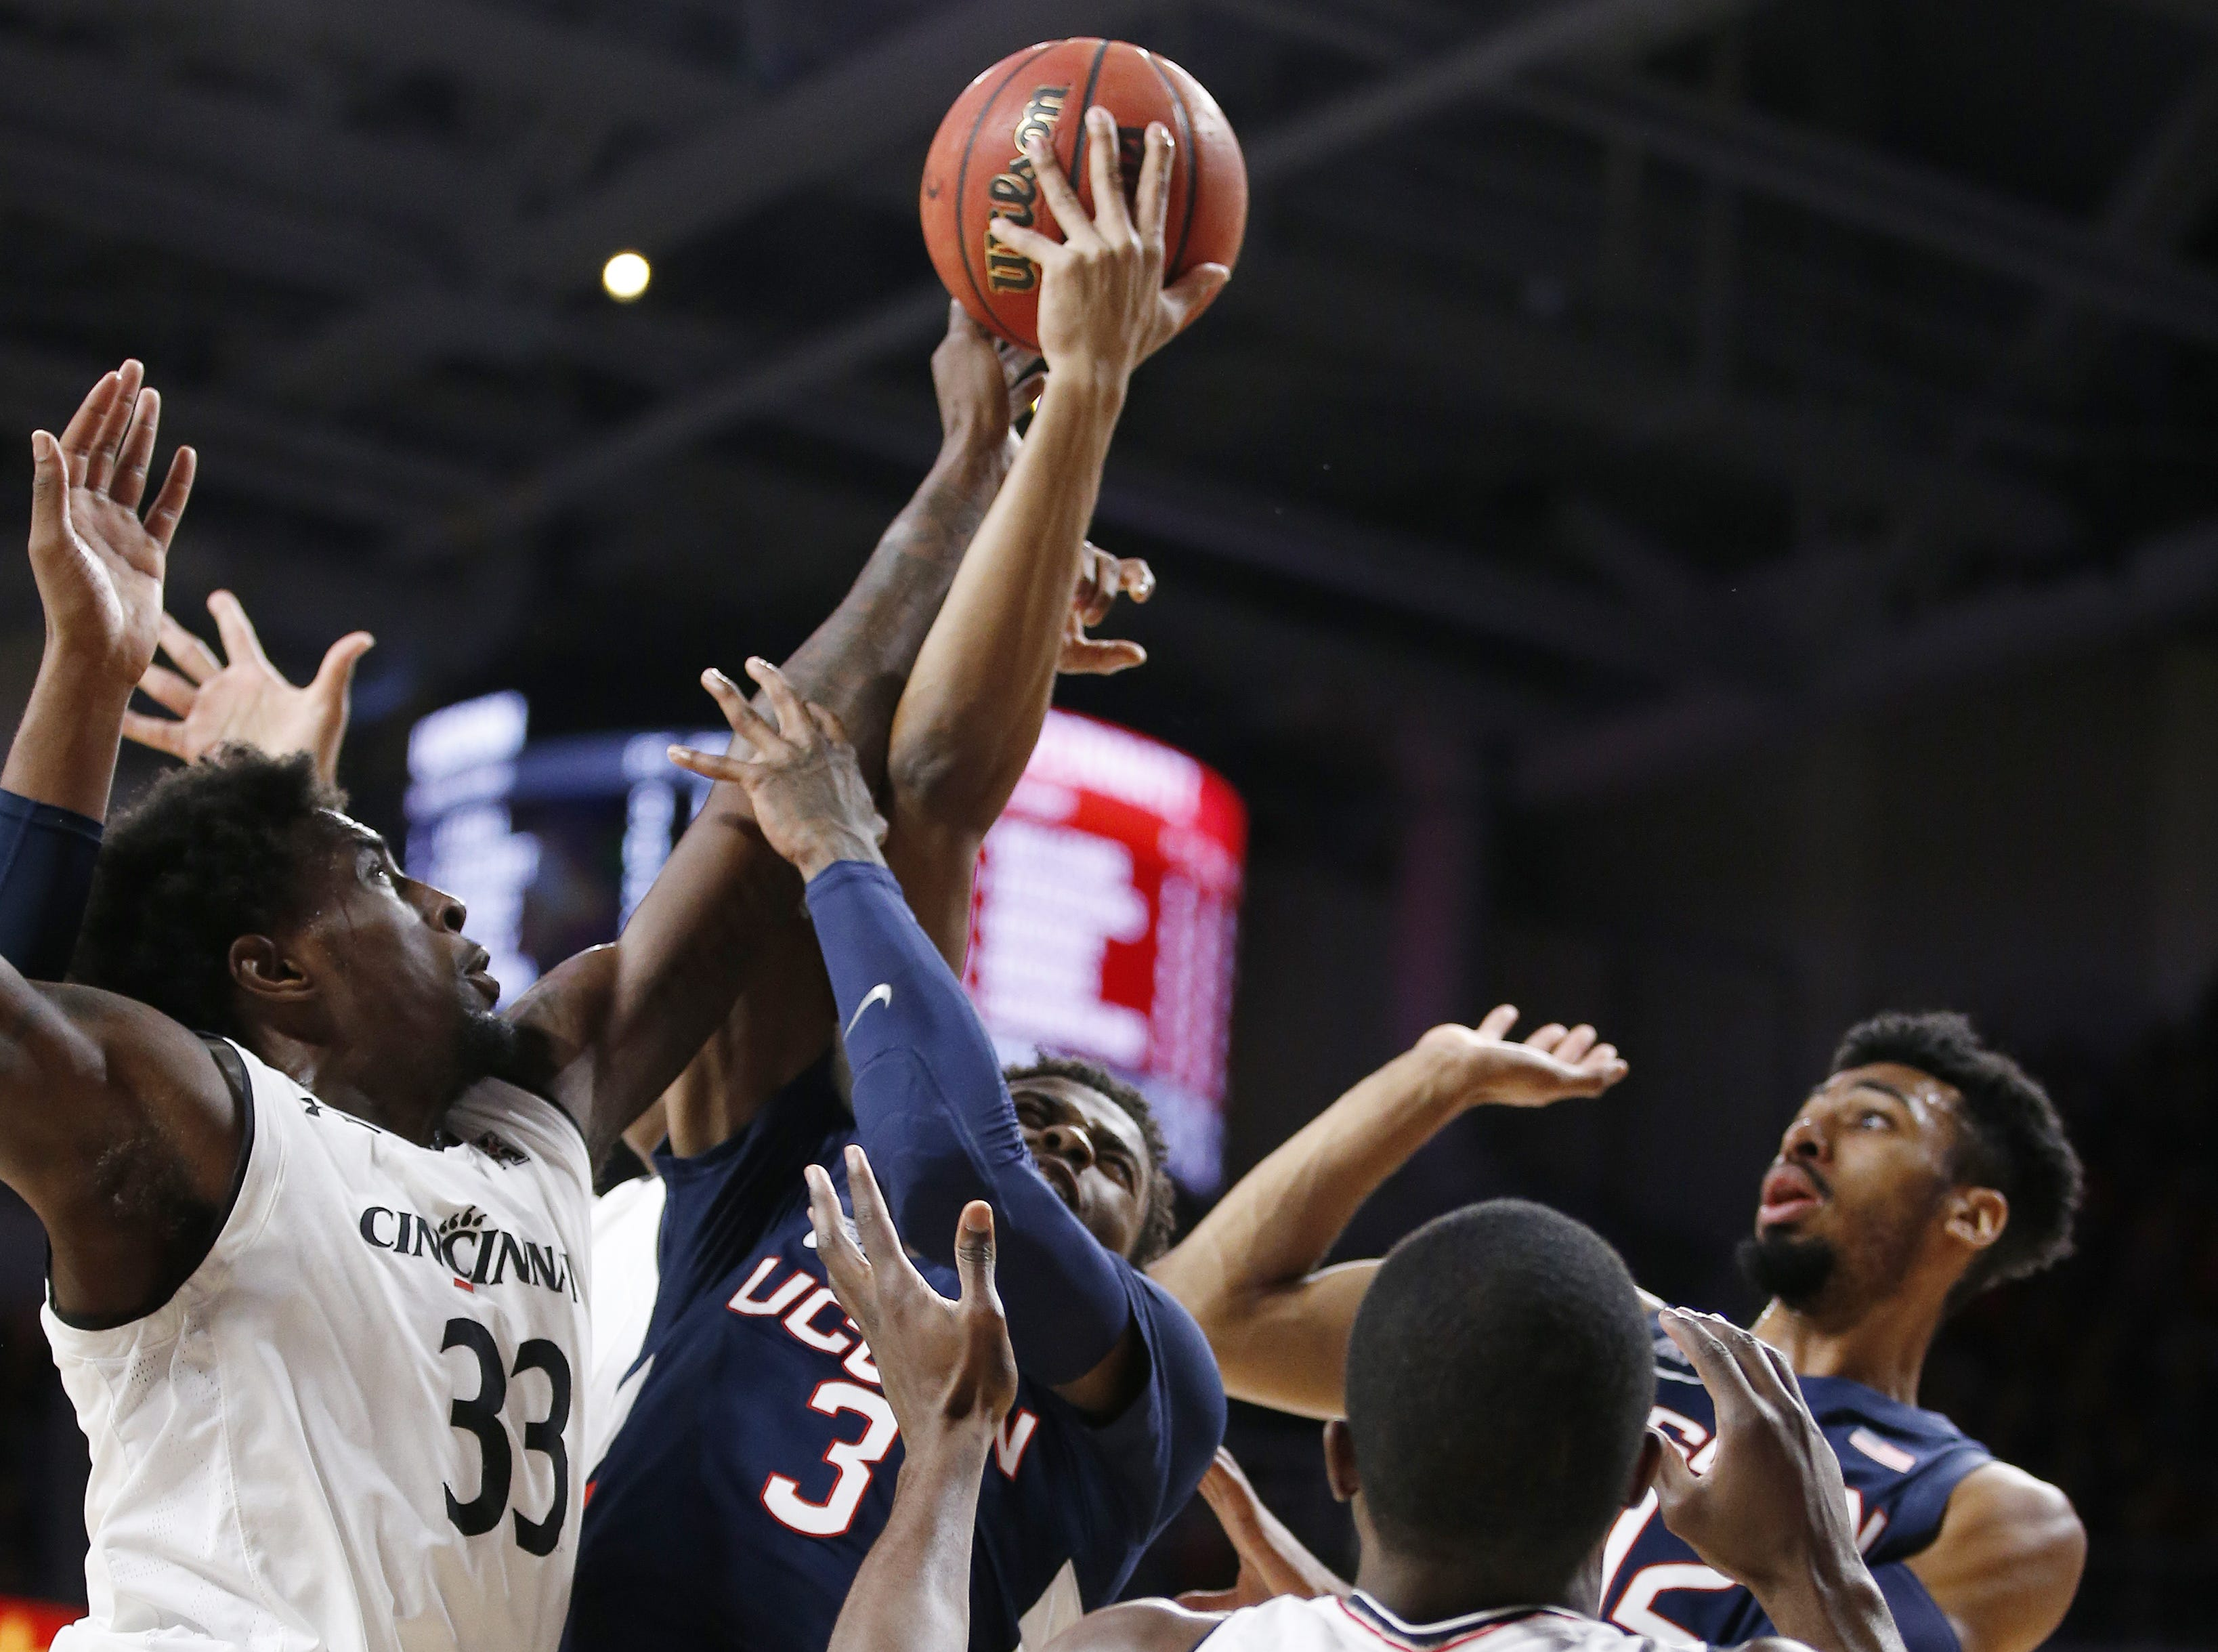 Cincinnati Bearcats center Nysier Brooks (33) fights for a rebound against Connecticut Huskies guard Alterique Gilbert (3) during the first half of a basketball game Saturday, Jan. 12, 2019 in Cincinnati. (Photo by Gary Landers for the Enquirer)